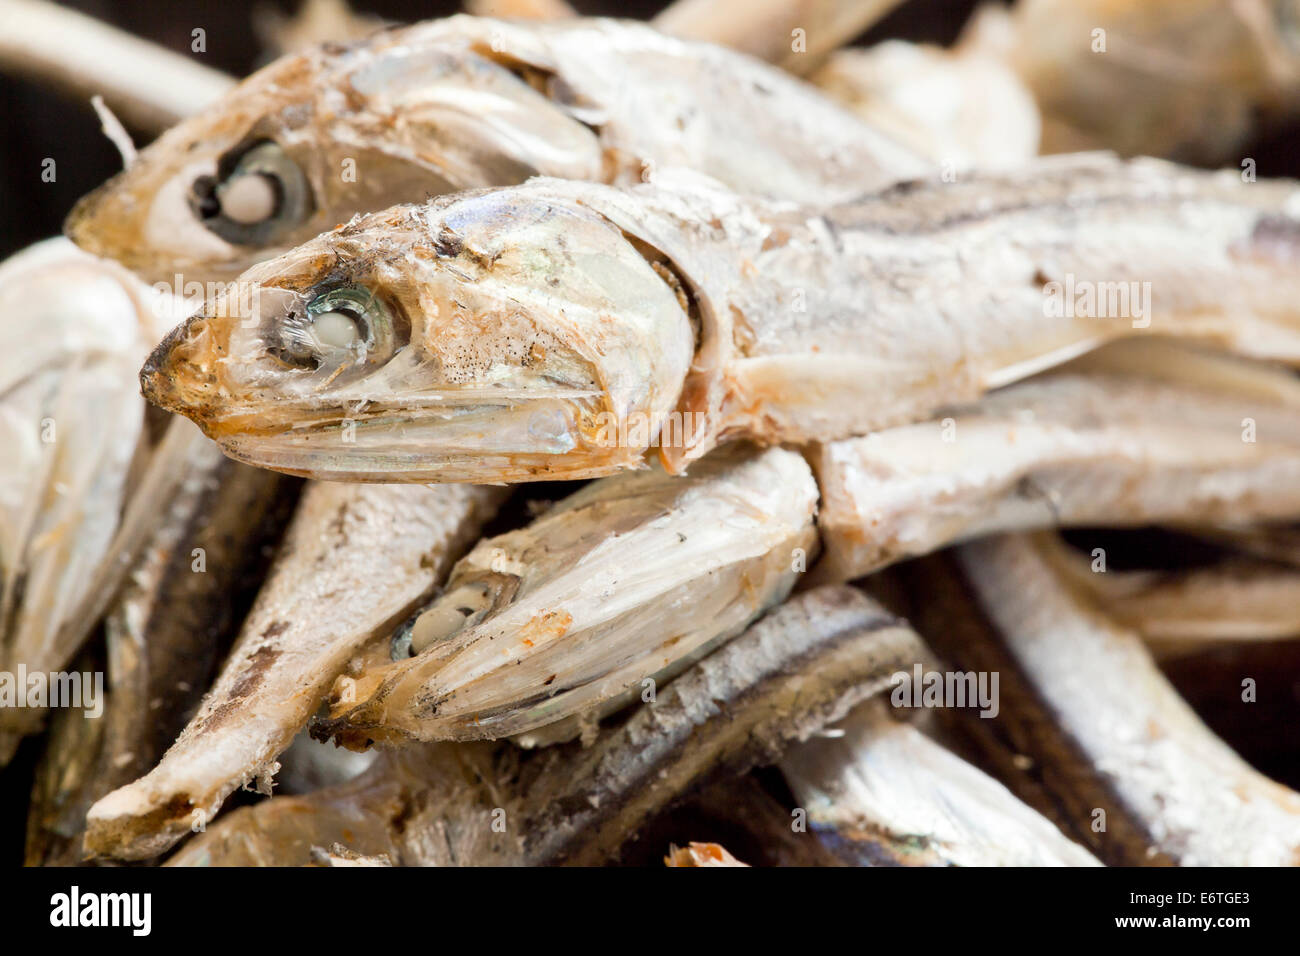 Dried Japanese anchovies (Engraulis japonicus) closeup - Stock Image